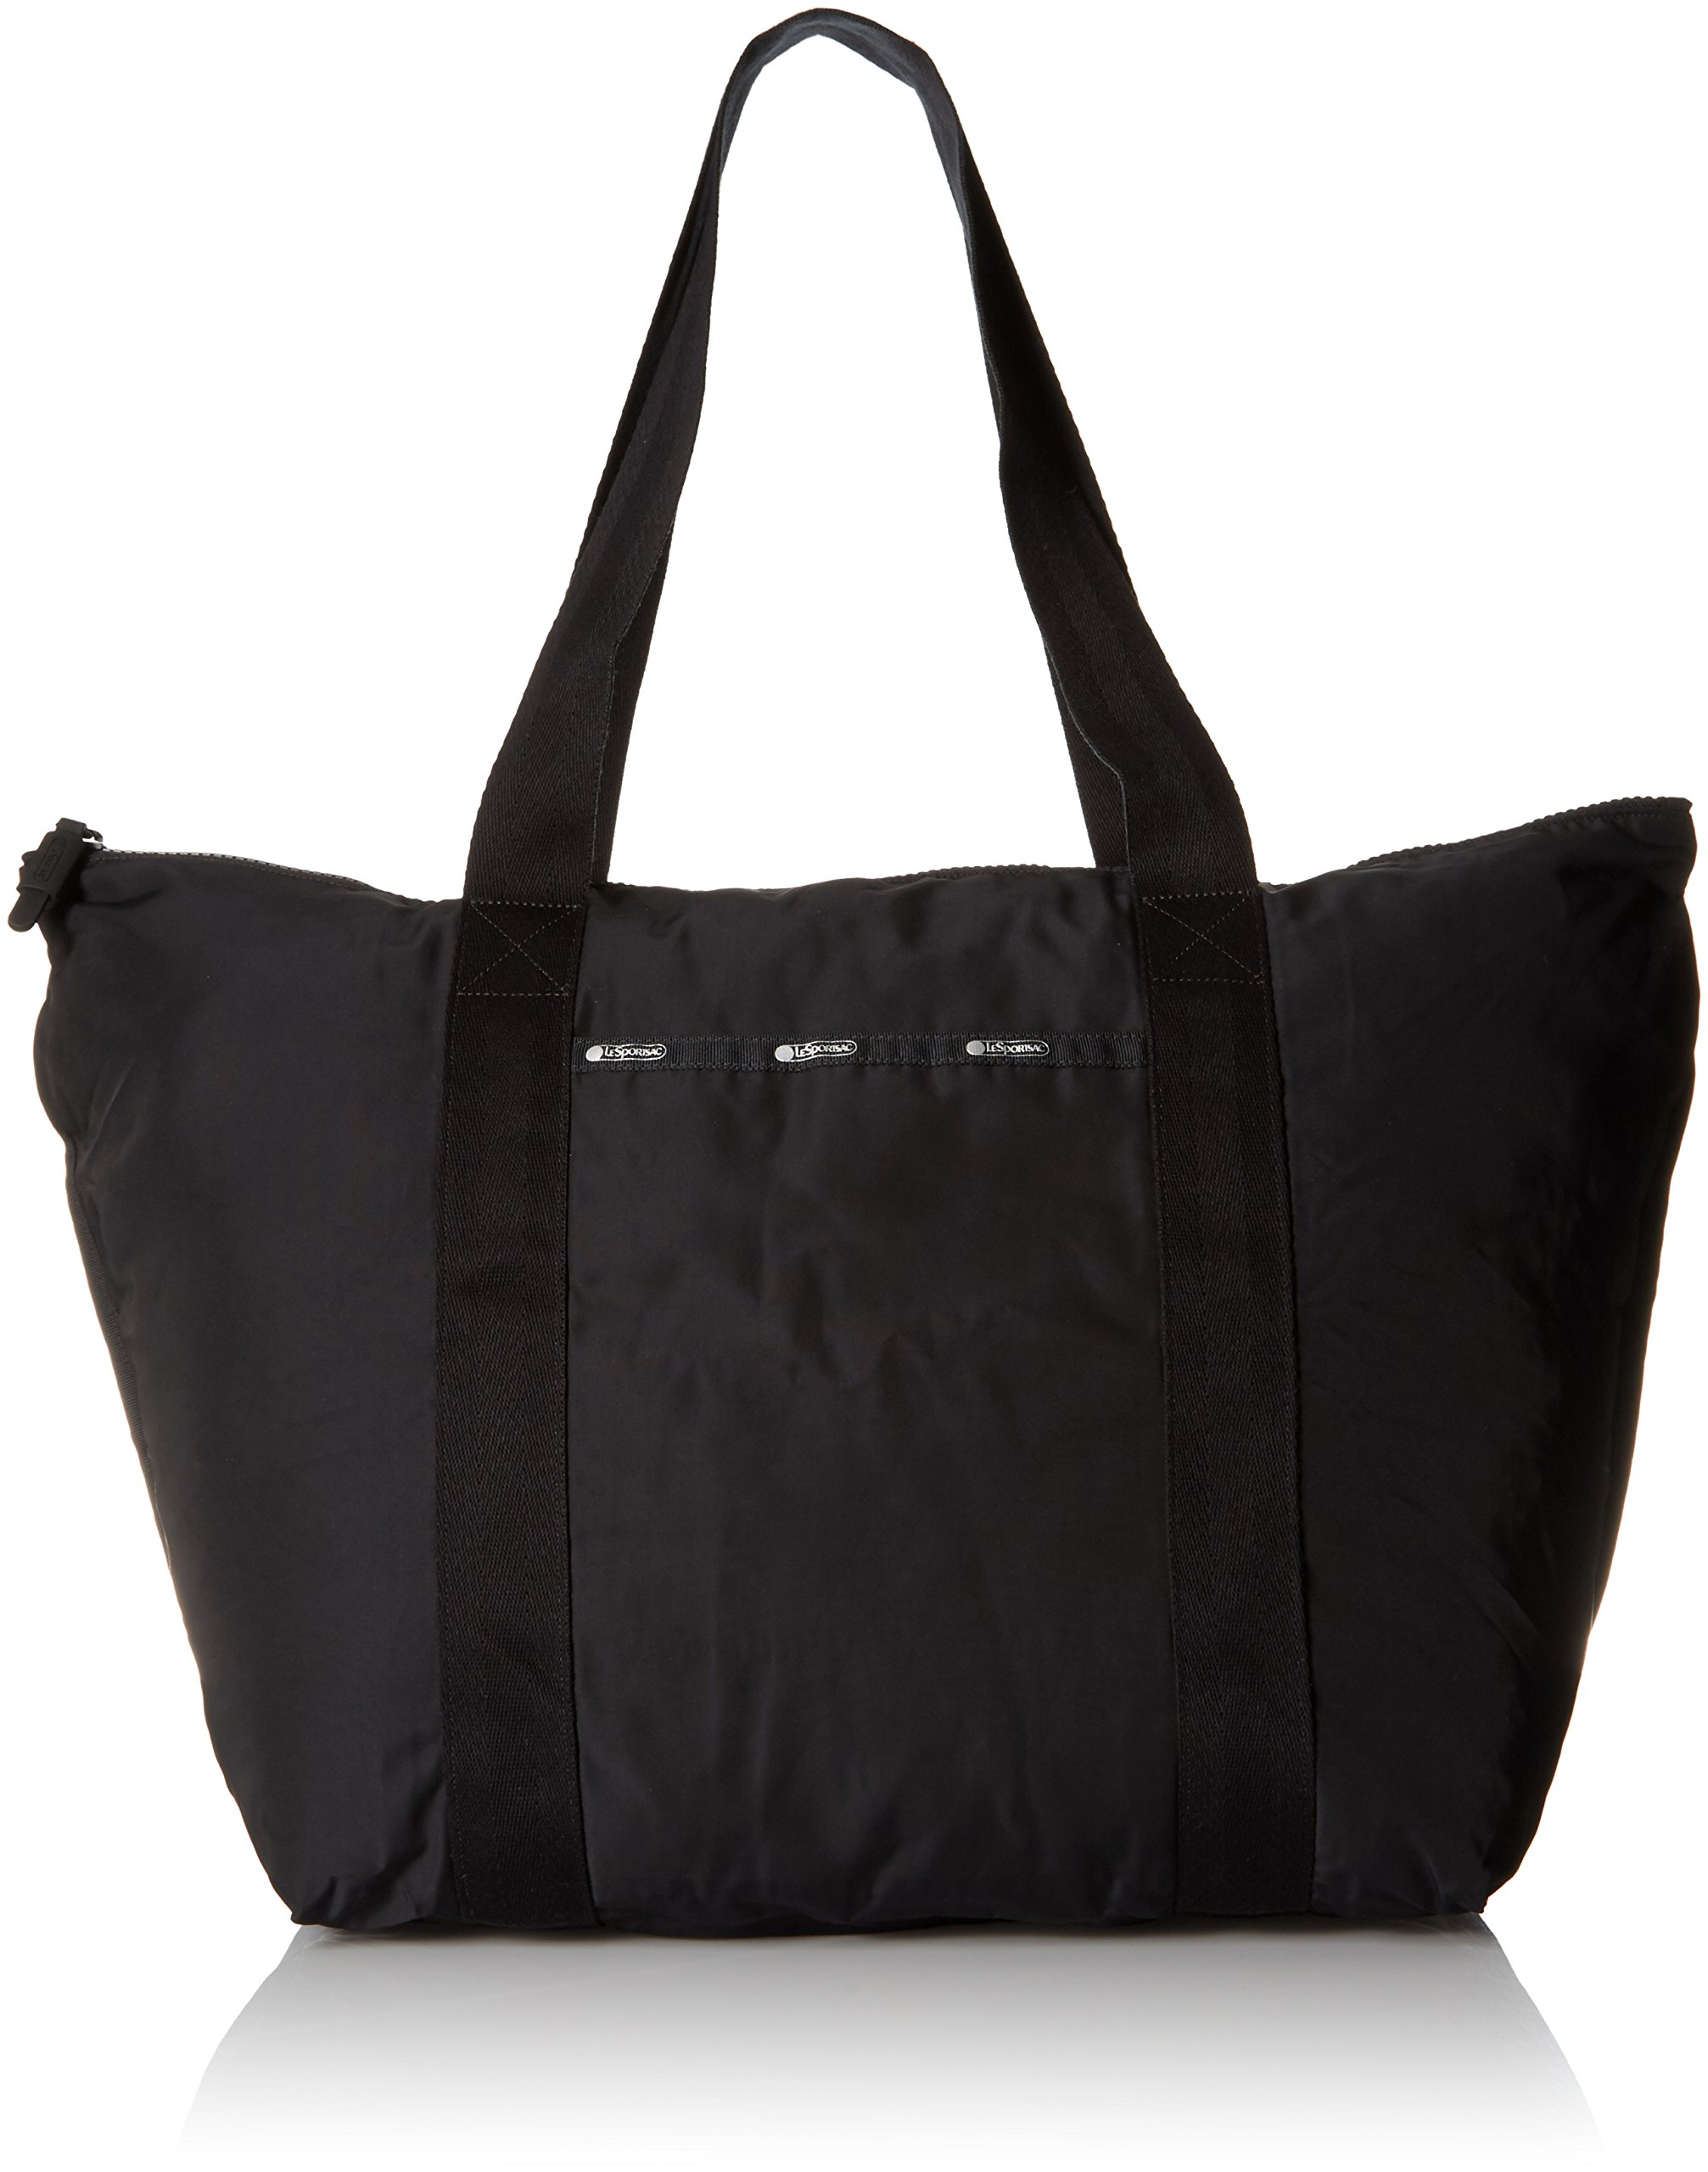 LeSportsac Travel Large on the Go Tote, True Black